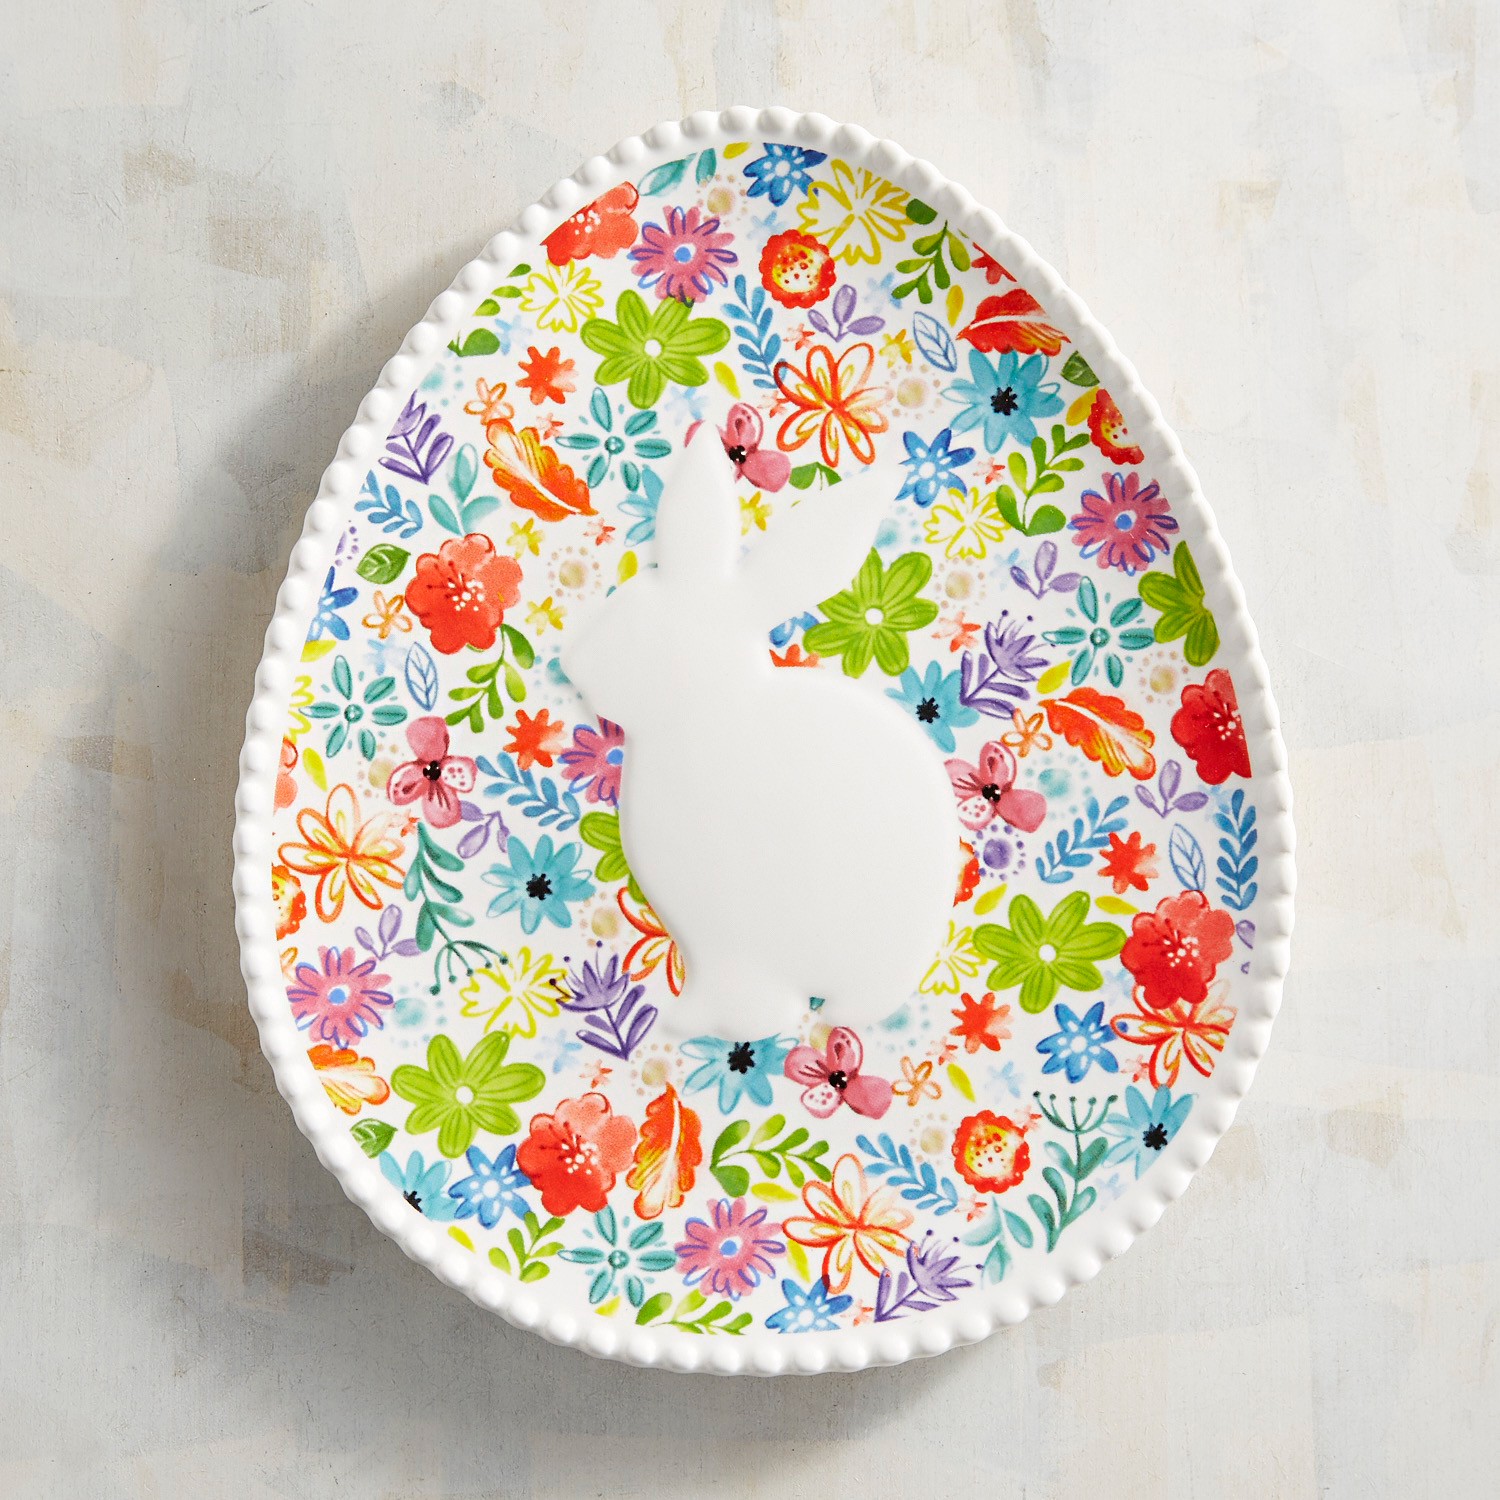 Full Bloom Bunny Egg Accent Plate